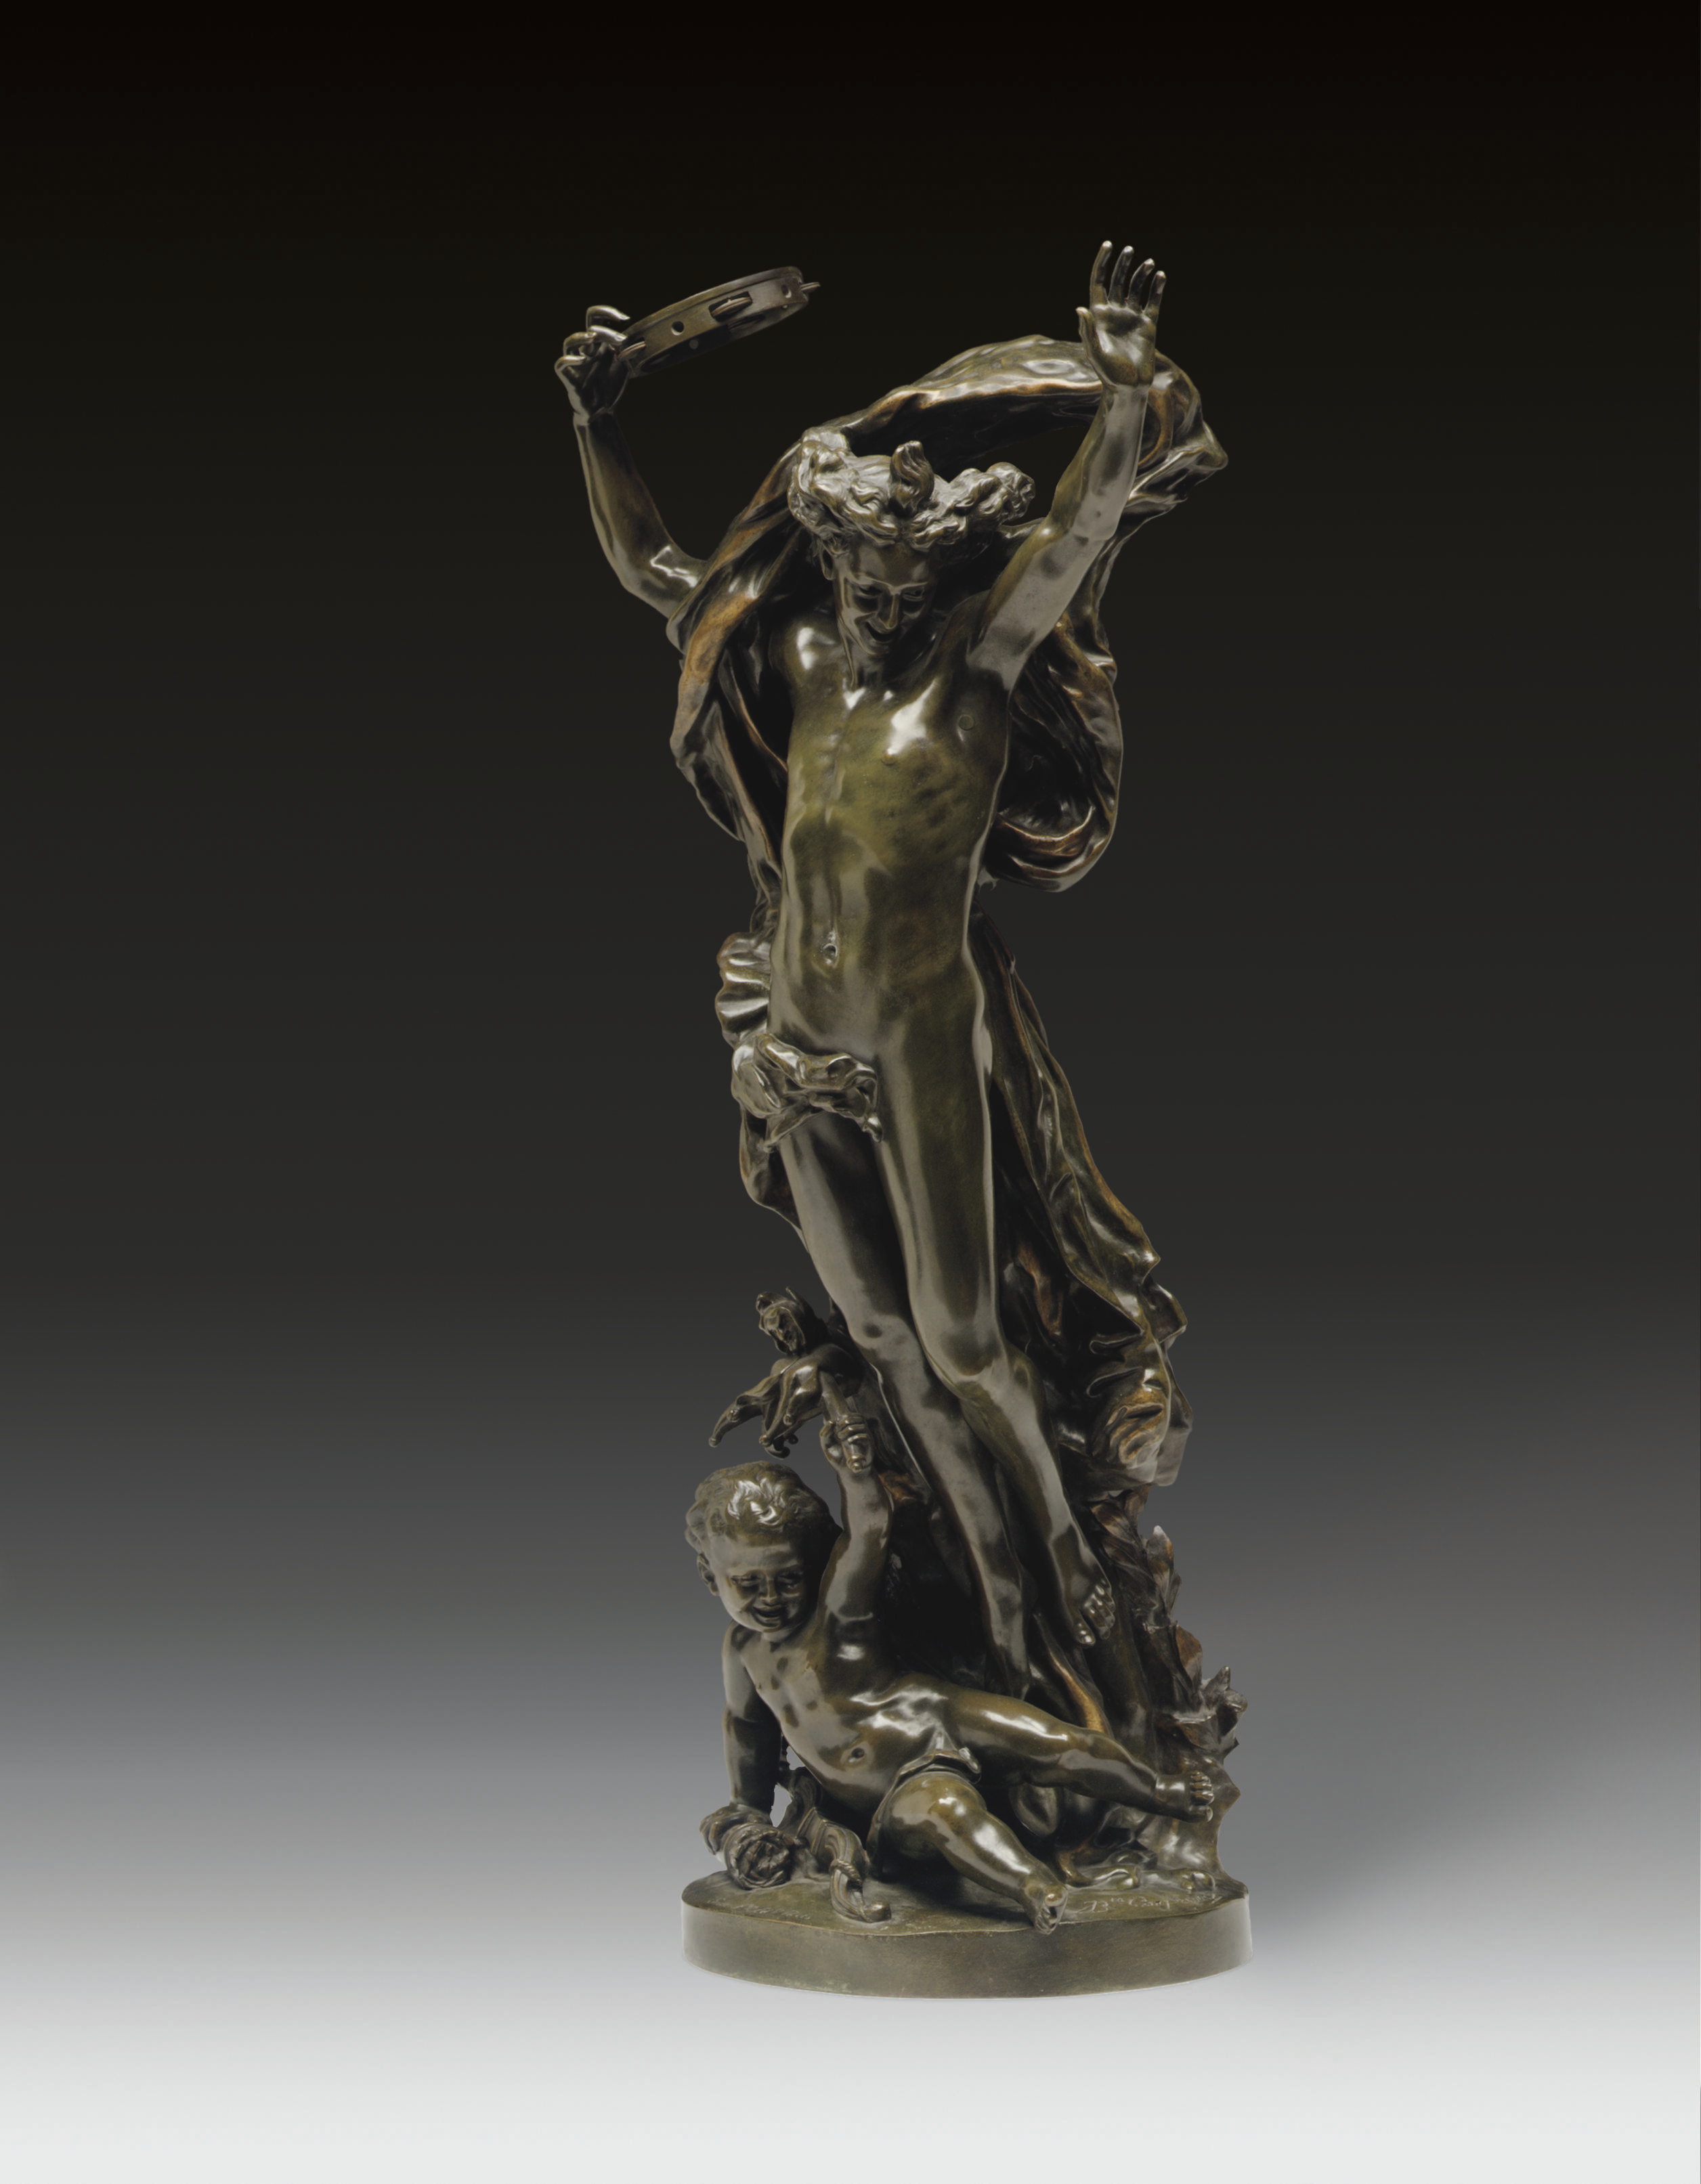 A FRENCH BRONZE FIGURAL GROUP ENTITLED 'GENIE DE LA DANSE'